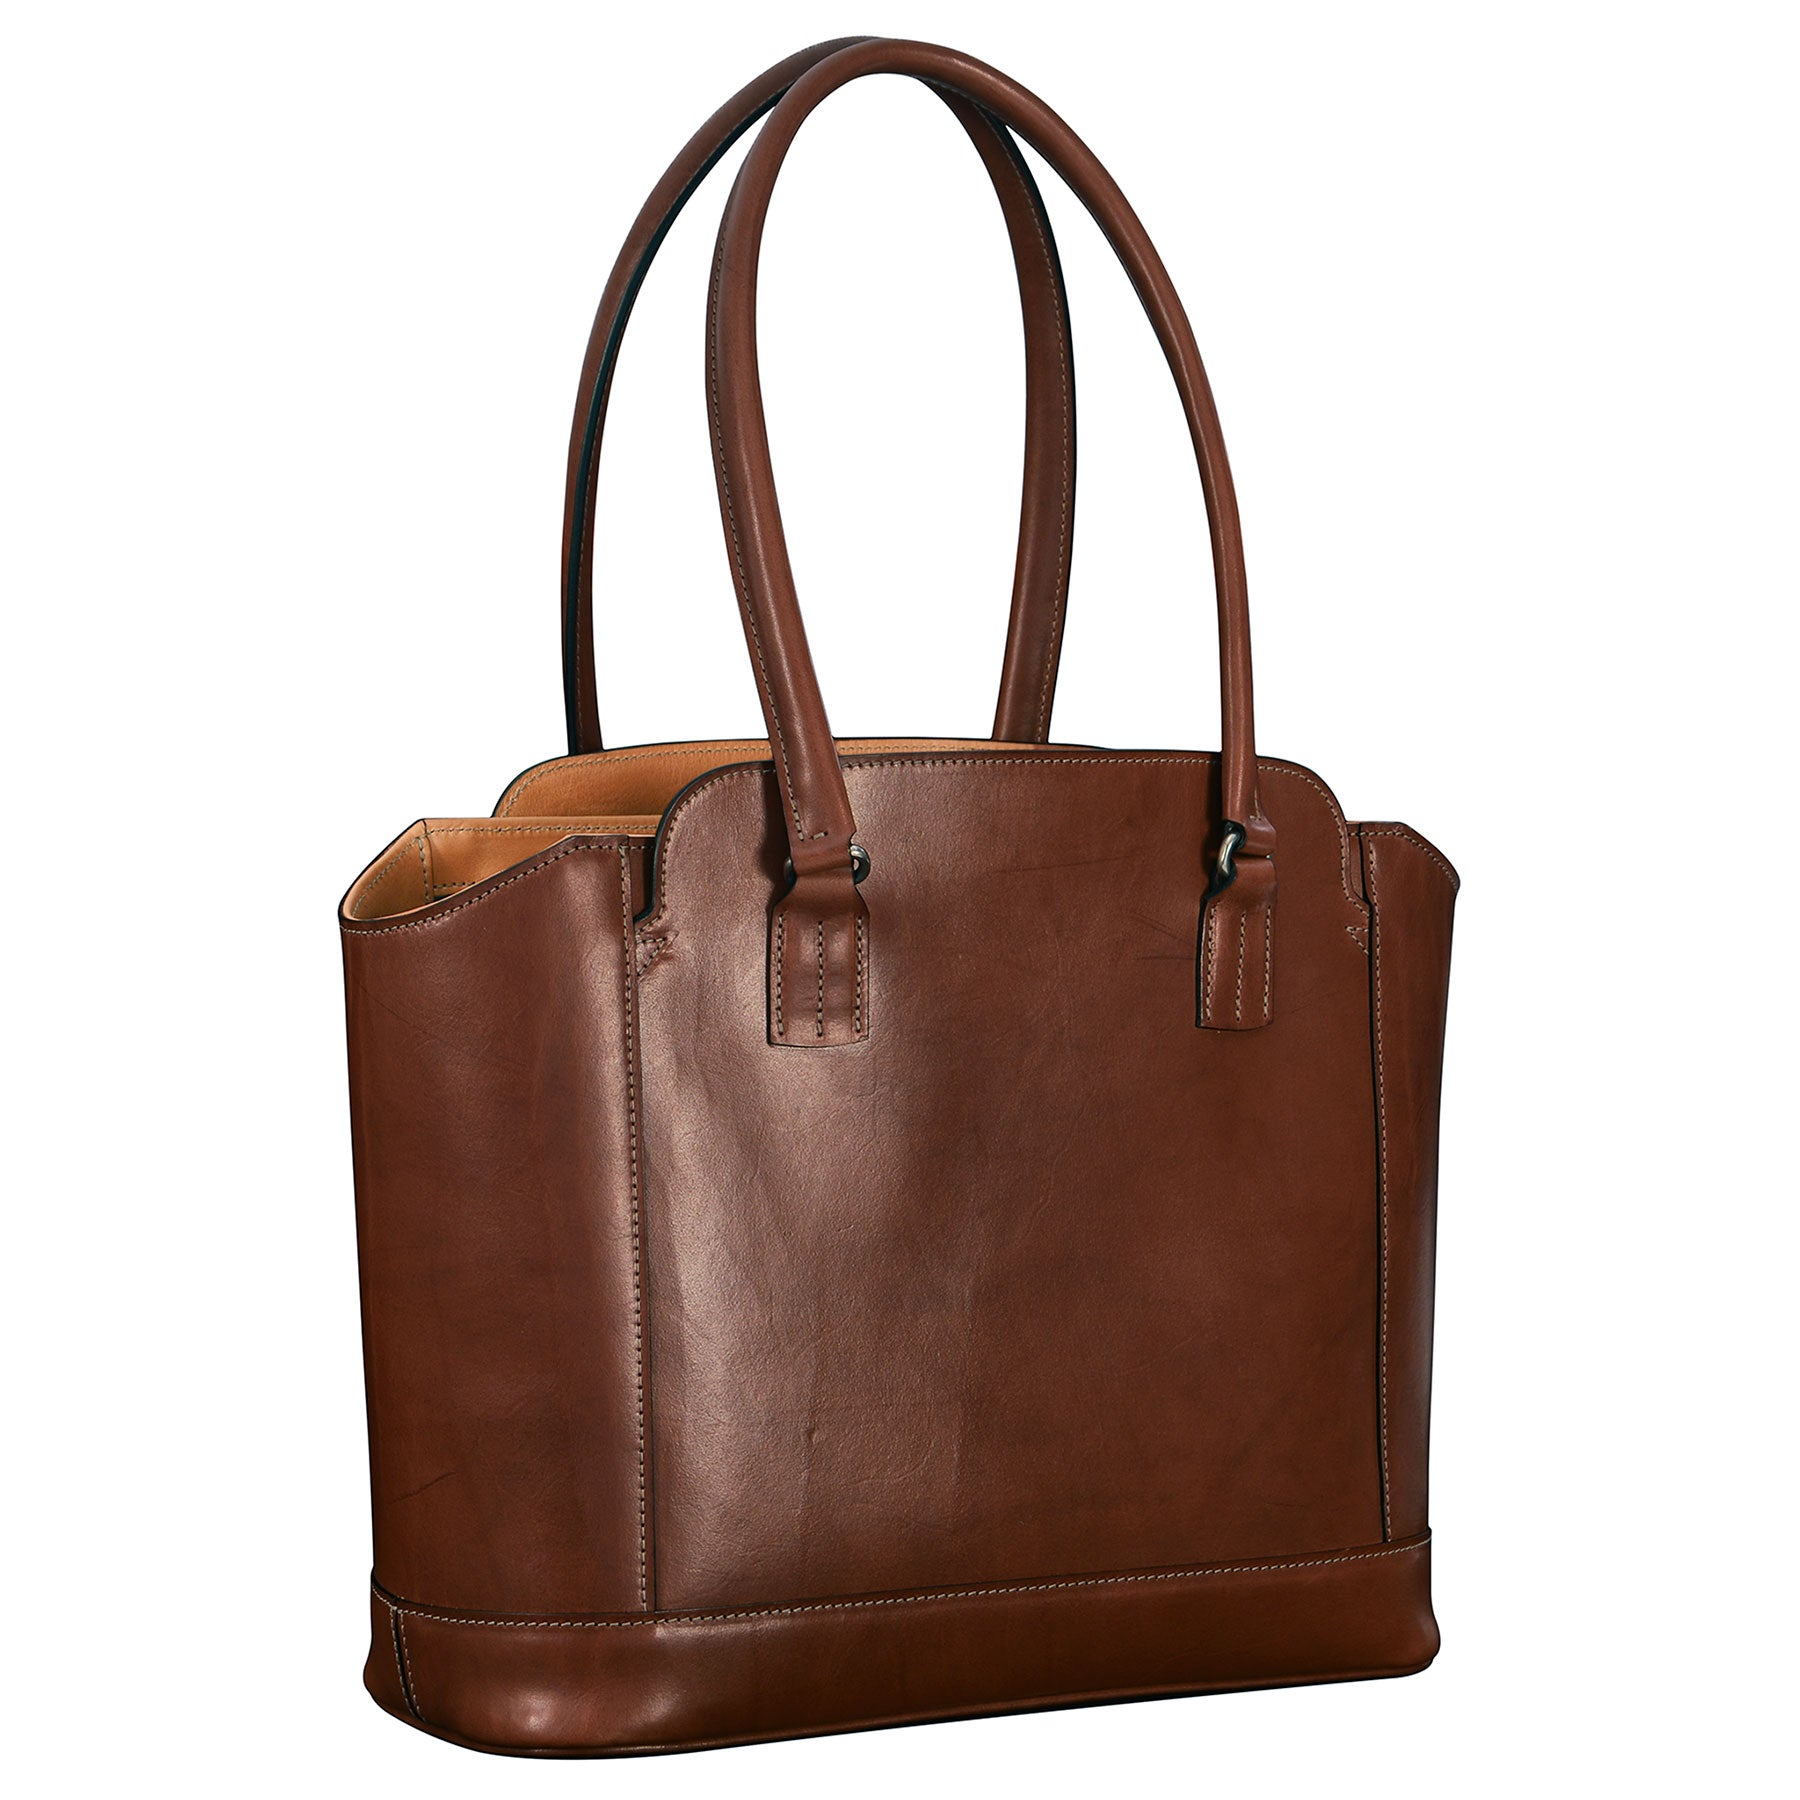 Glaser Designs City Tote with Long Handles . Hand burnished Espresso vegetable tanned leather. Solid brass hardware. Made to measure, custom sizes.